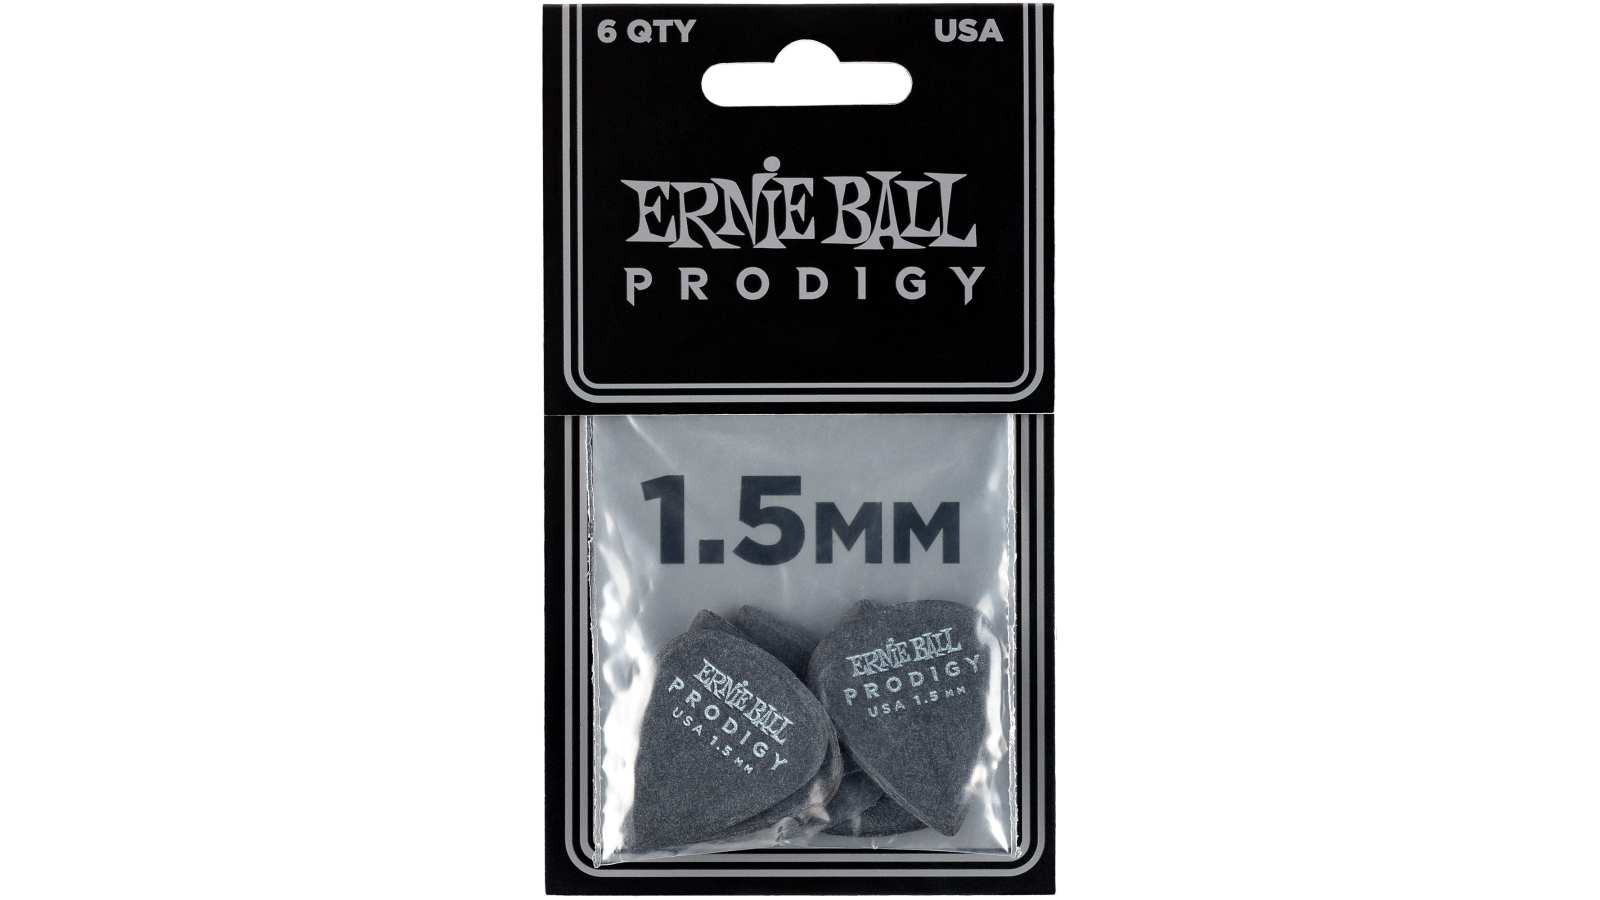 Ernie Ball EB9199 Picks Prodigy standard 6er Pack 1,5mm Black